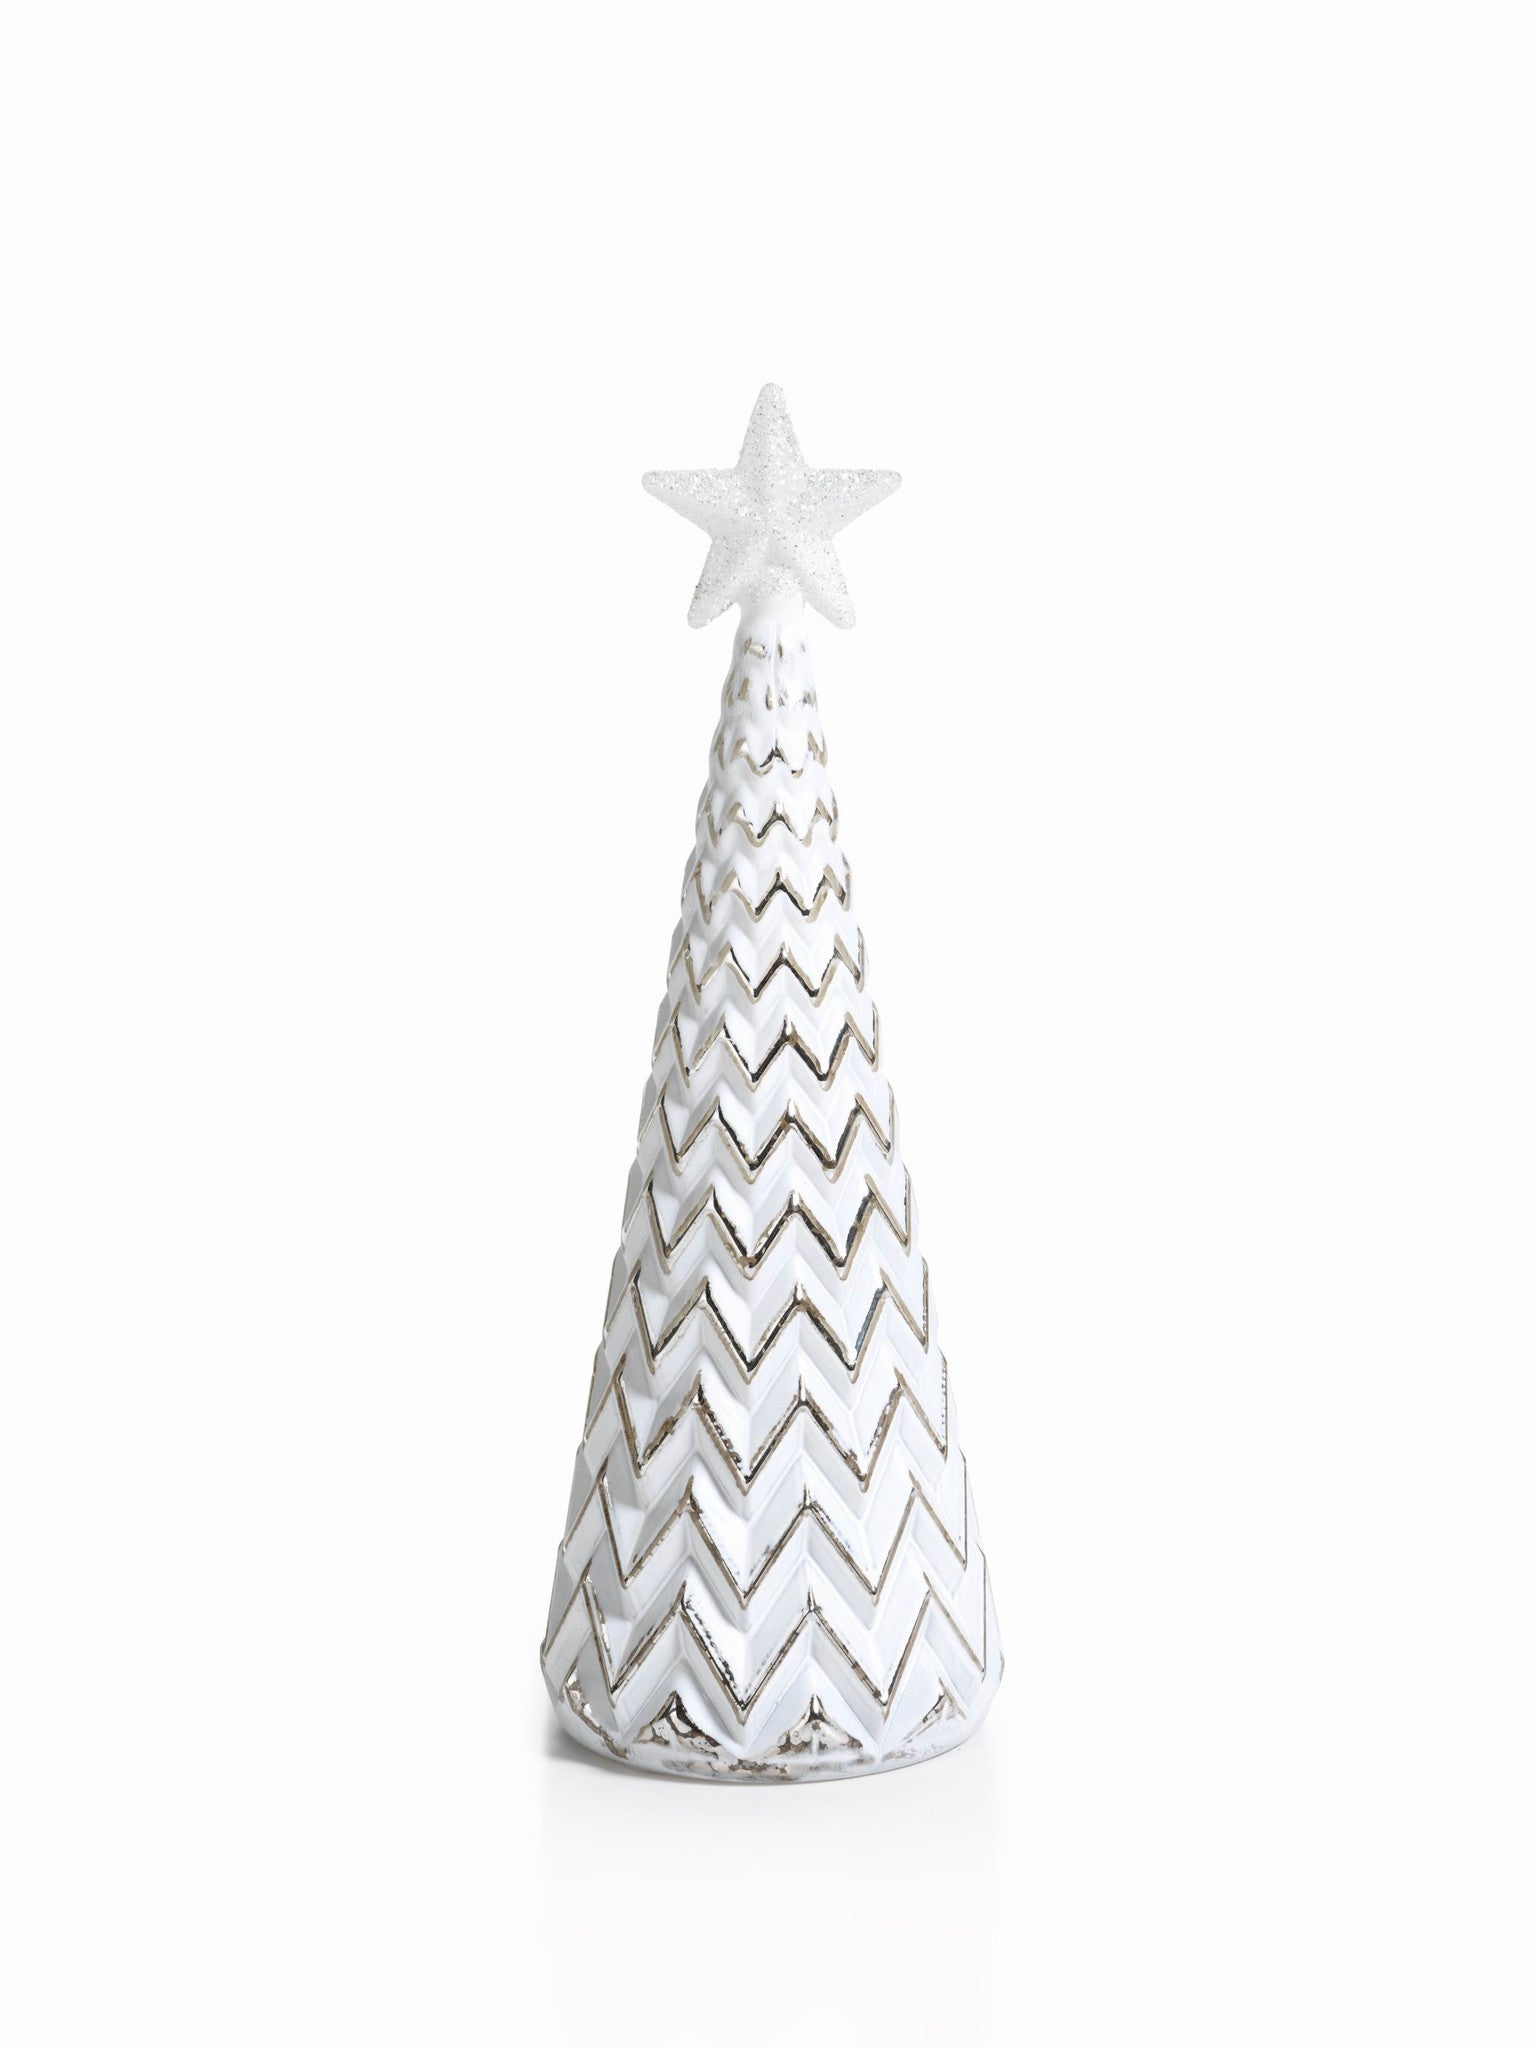 LED Glass Decorative Tree - Silver - Set of 6 - Large / ZigZag - CARLYLE AVENUE - 9